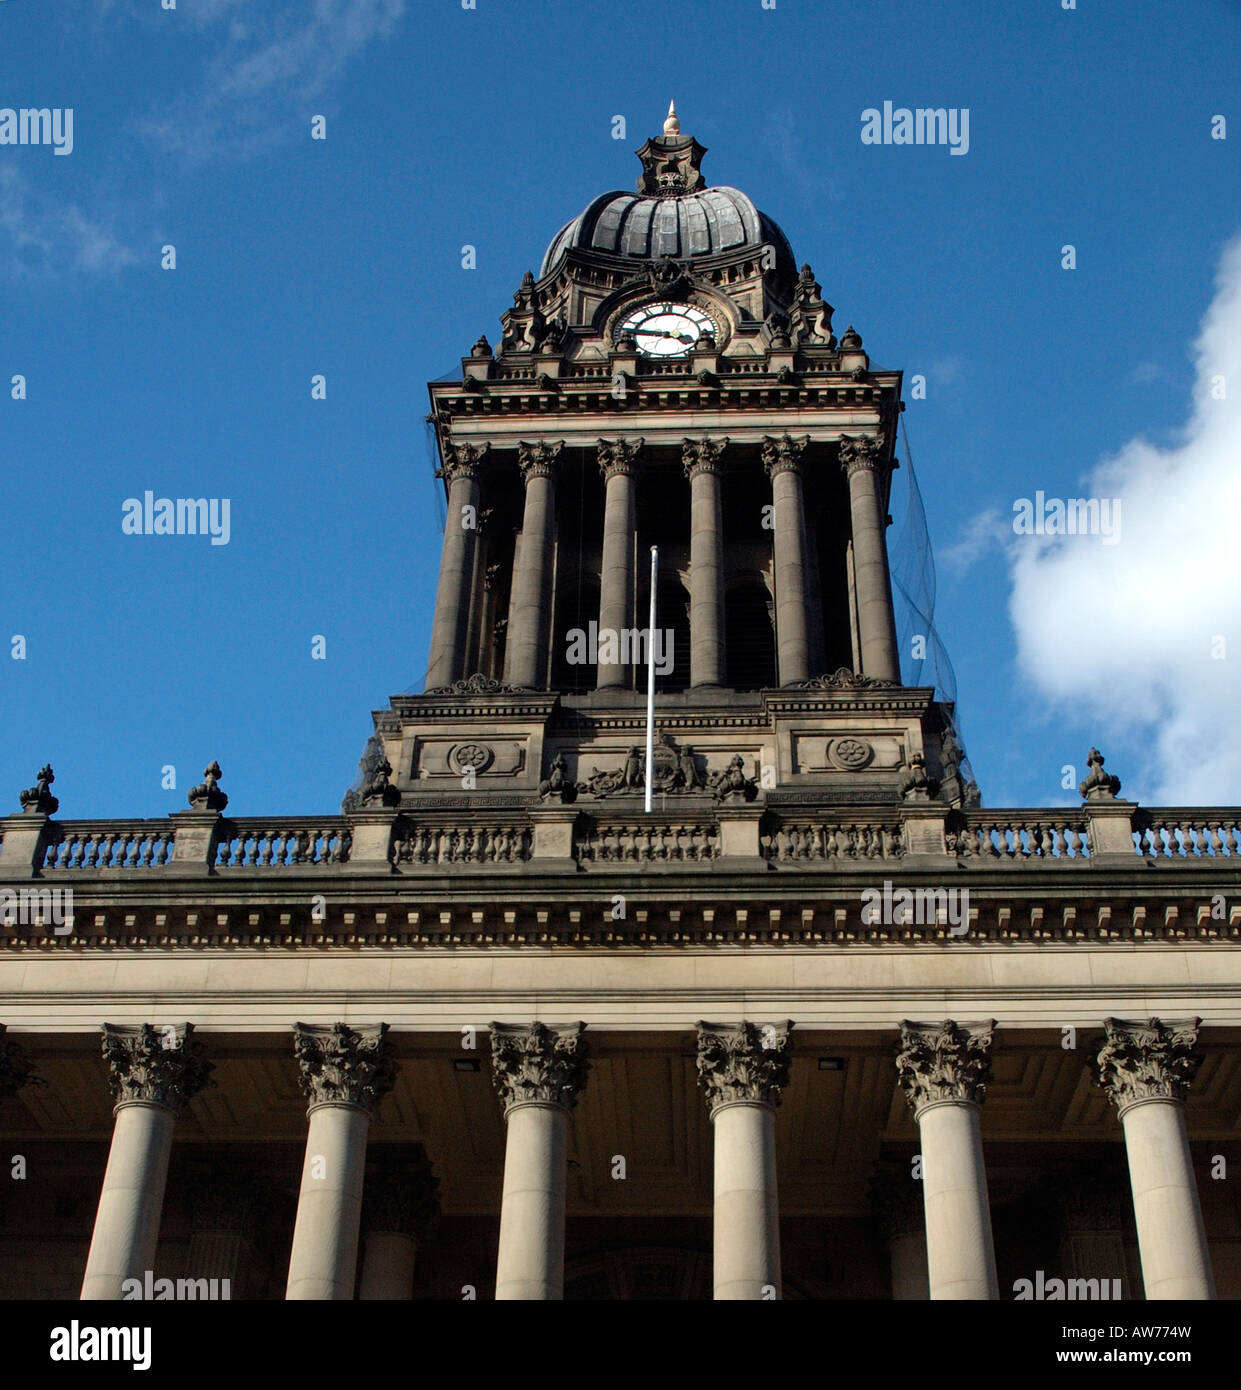 Leeds Town Hall - Stock Image